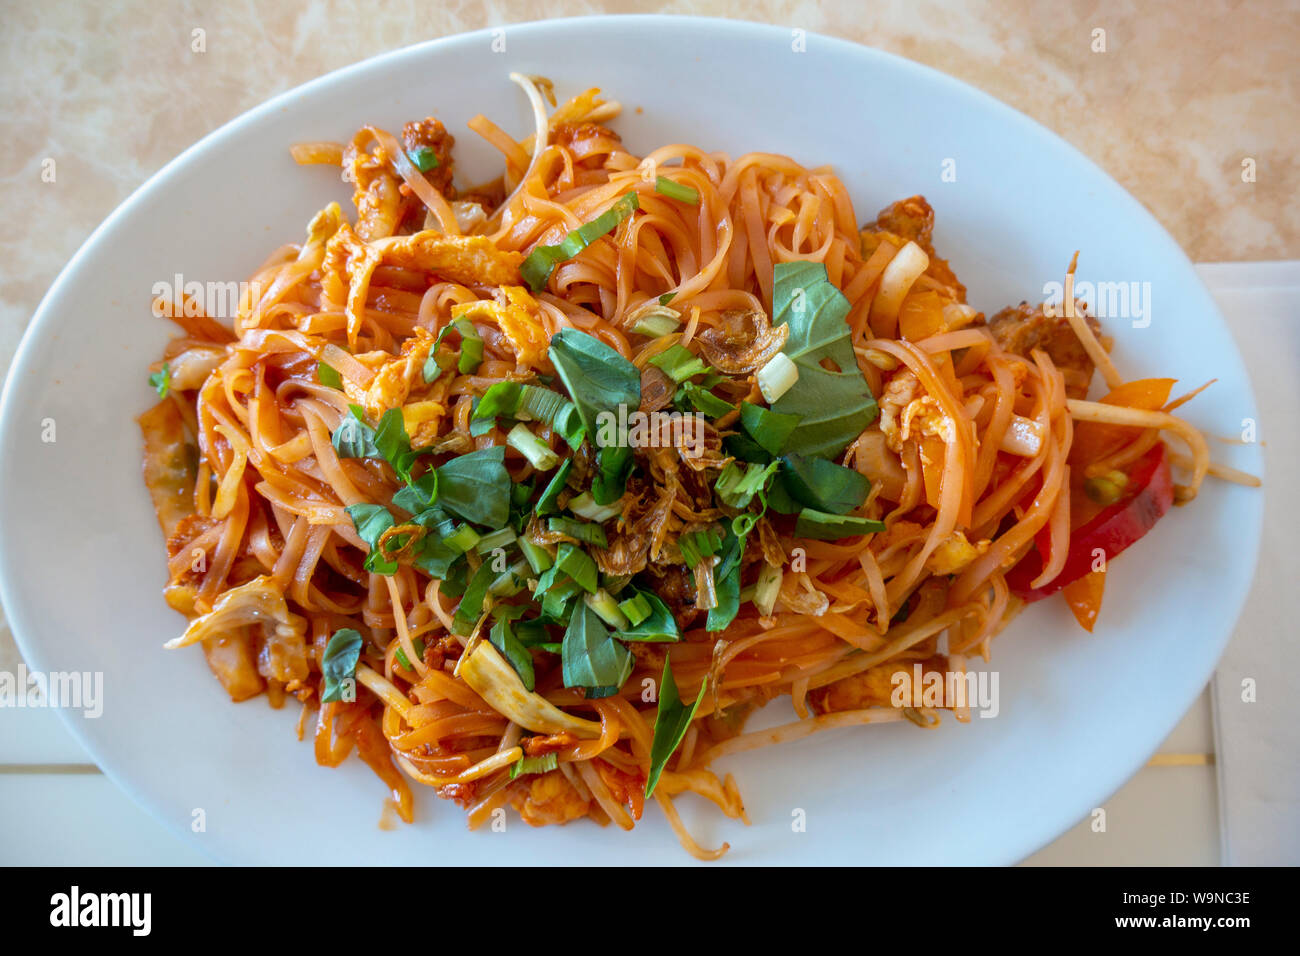 a-vegetarian-pad-thai-dinner-with-fresh-